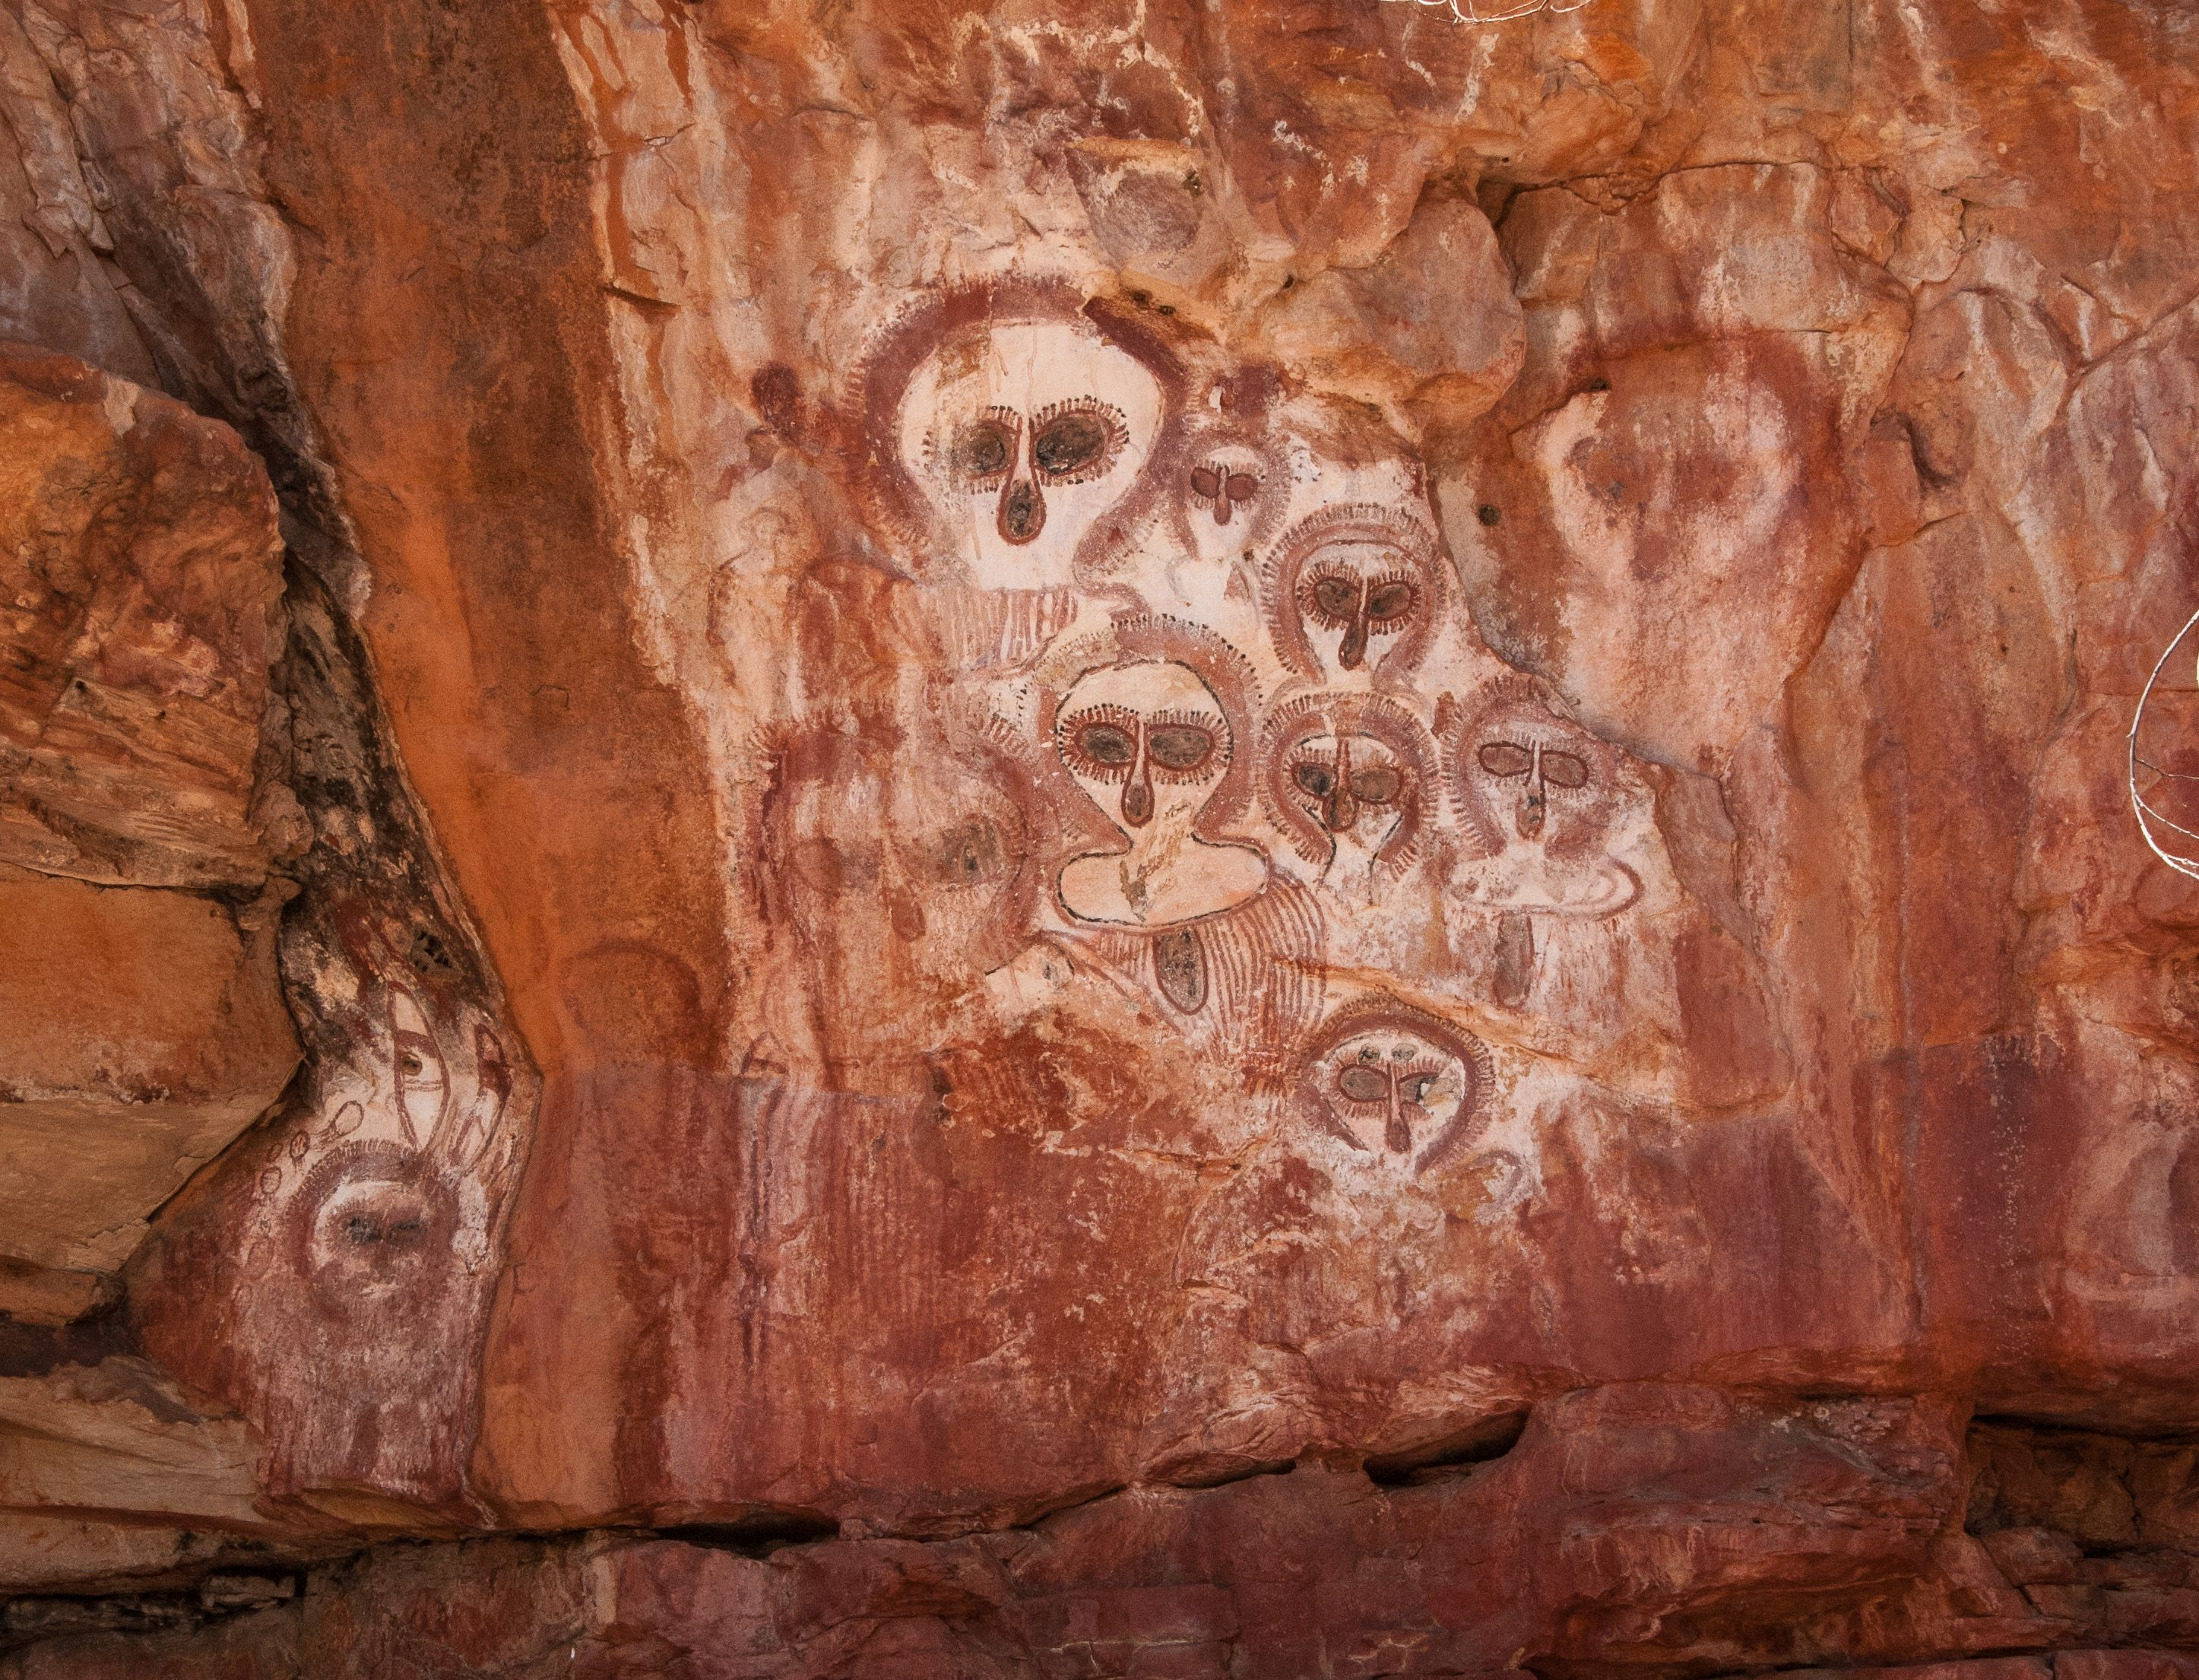 Aboriginal pictographs known as wandjina in the wunnumurra